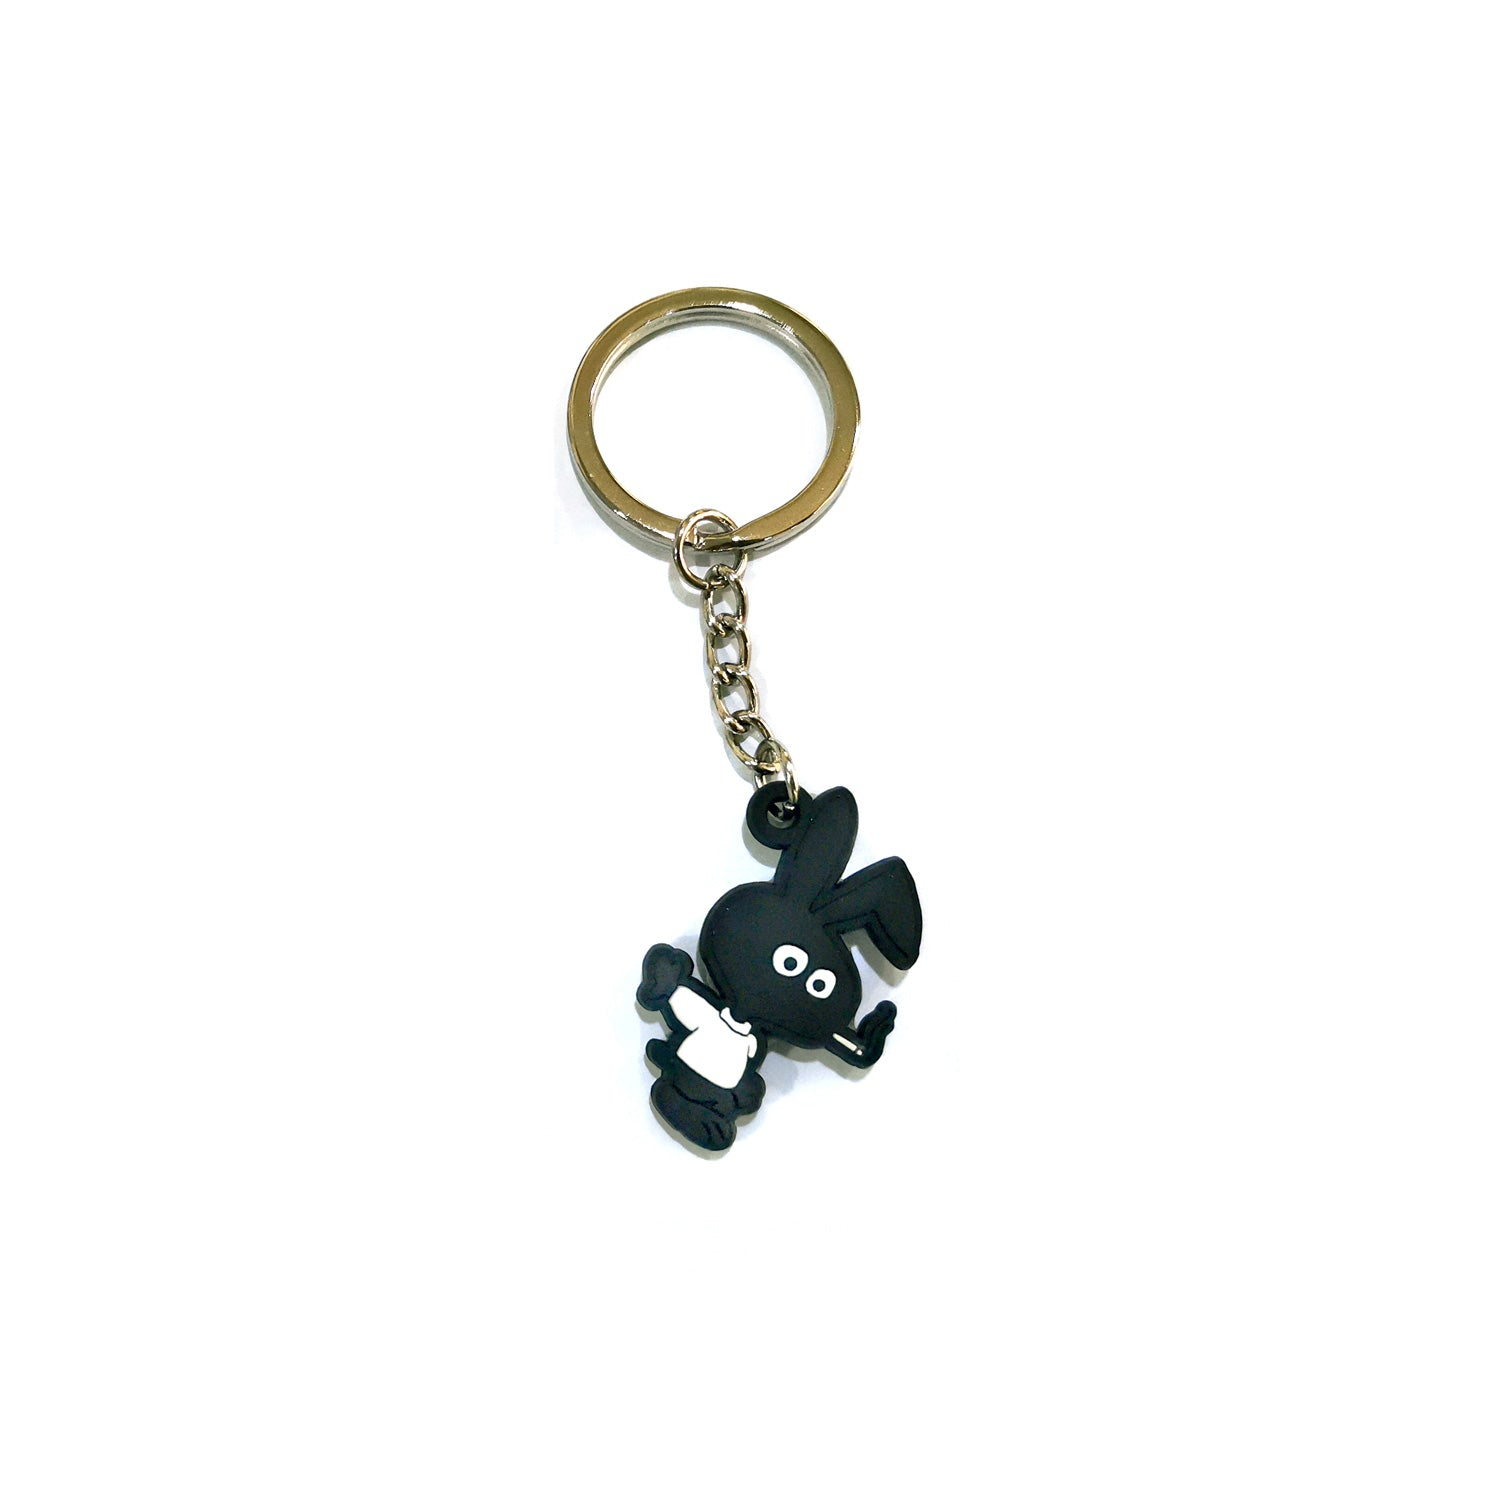 COLD WORLD ACCESSORIES BLACK O/S COLD BUNNY PVC KEY CHAIN